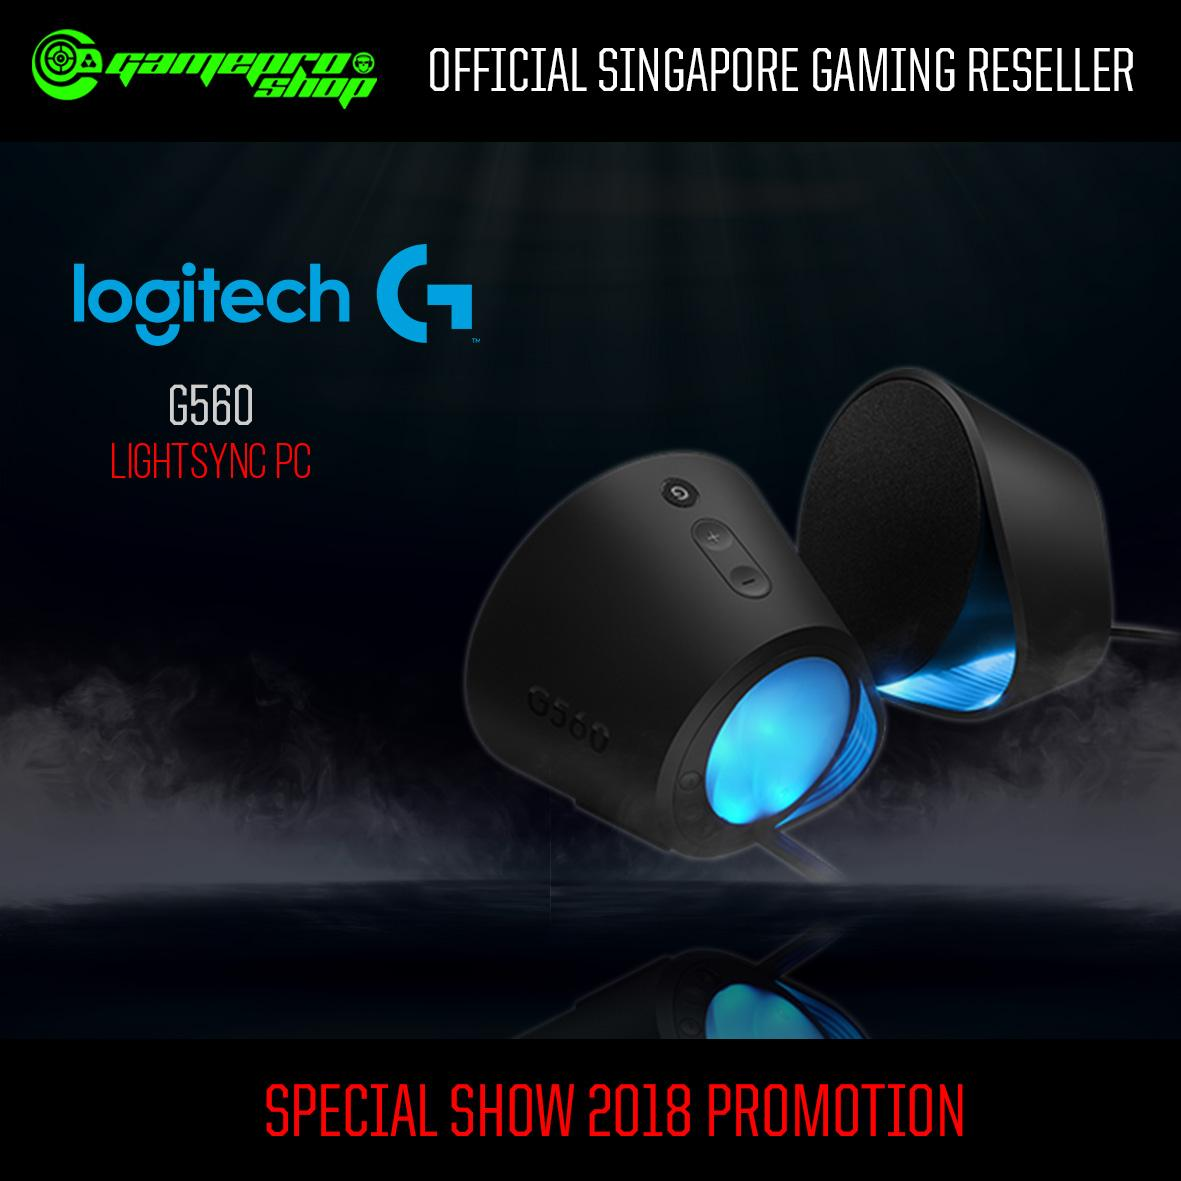 Logitech G560 Lightsync Pc Gaming Speaker Singapore Multimedia Z213 Original